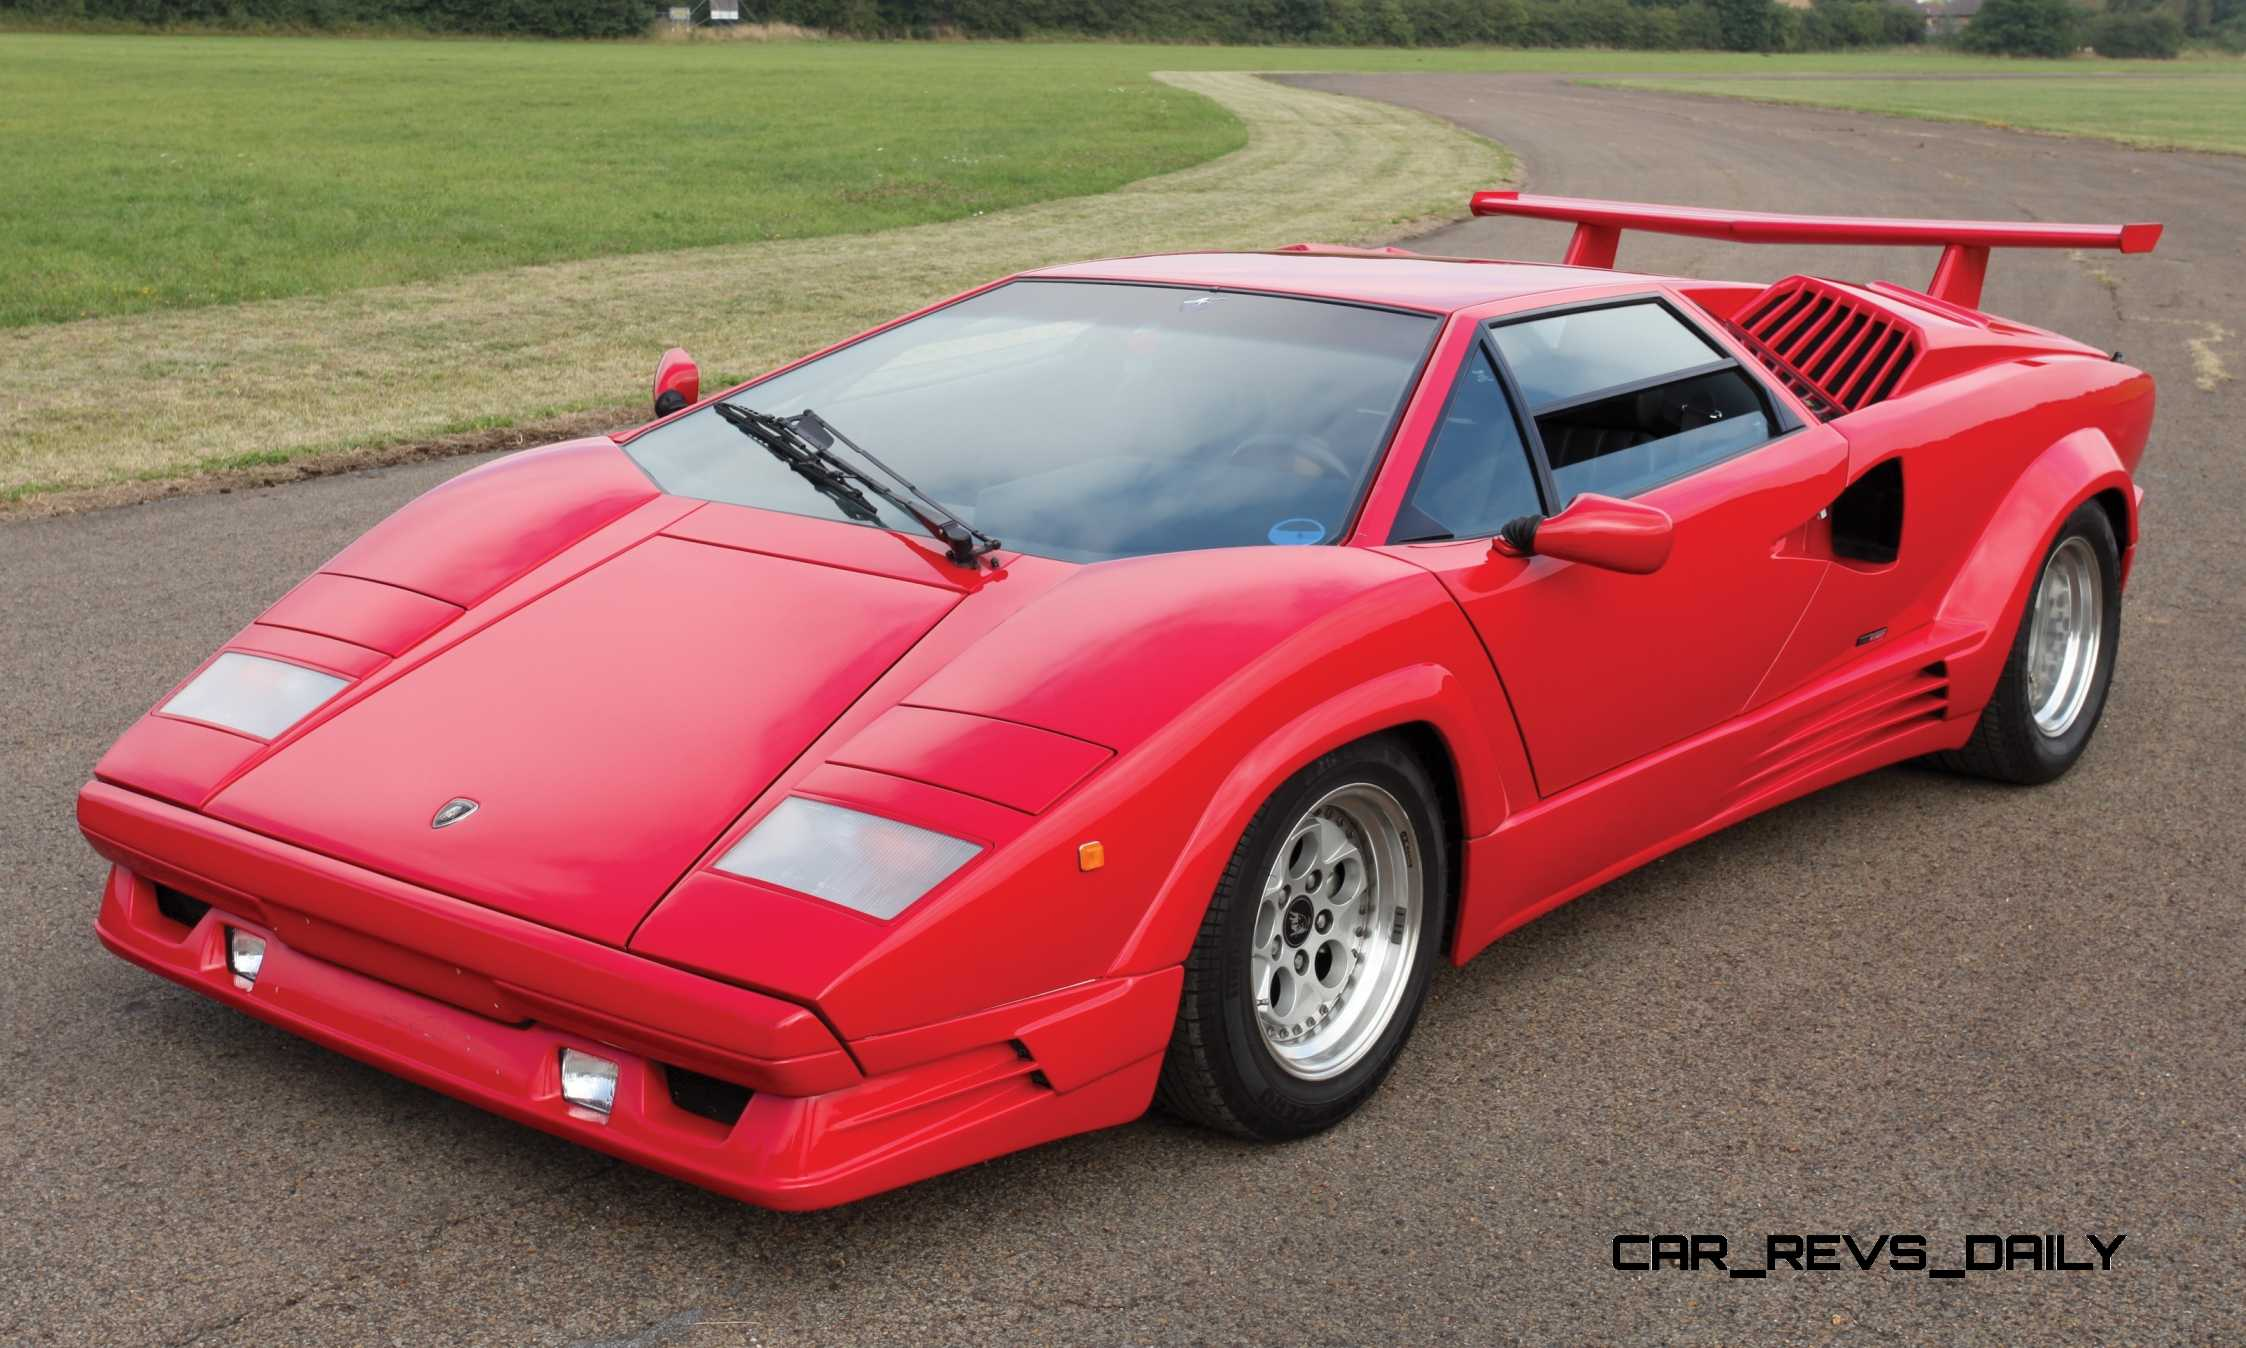 1990 Lamborghini Countach 25th Anniversary Edition Brings